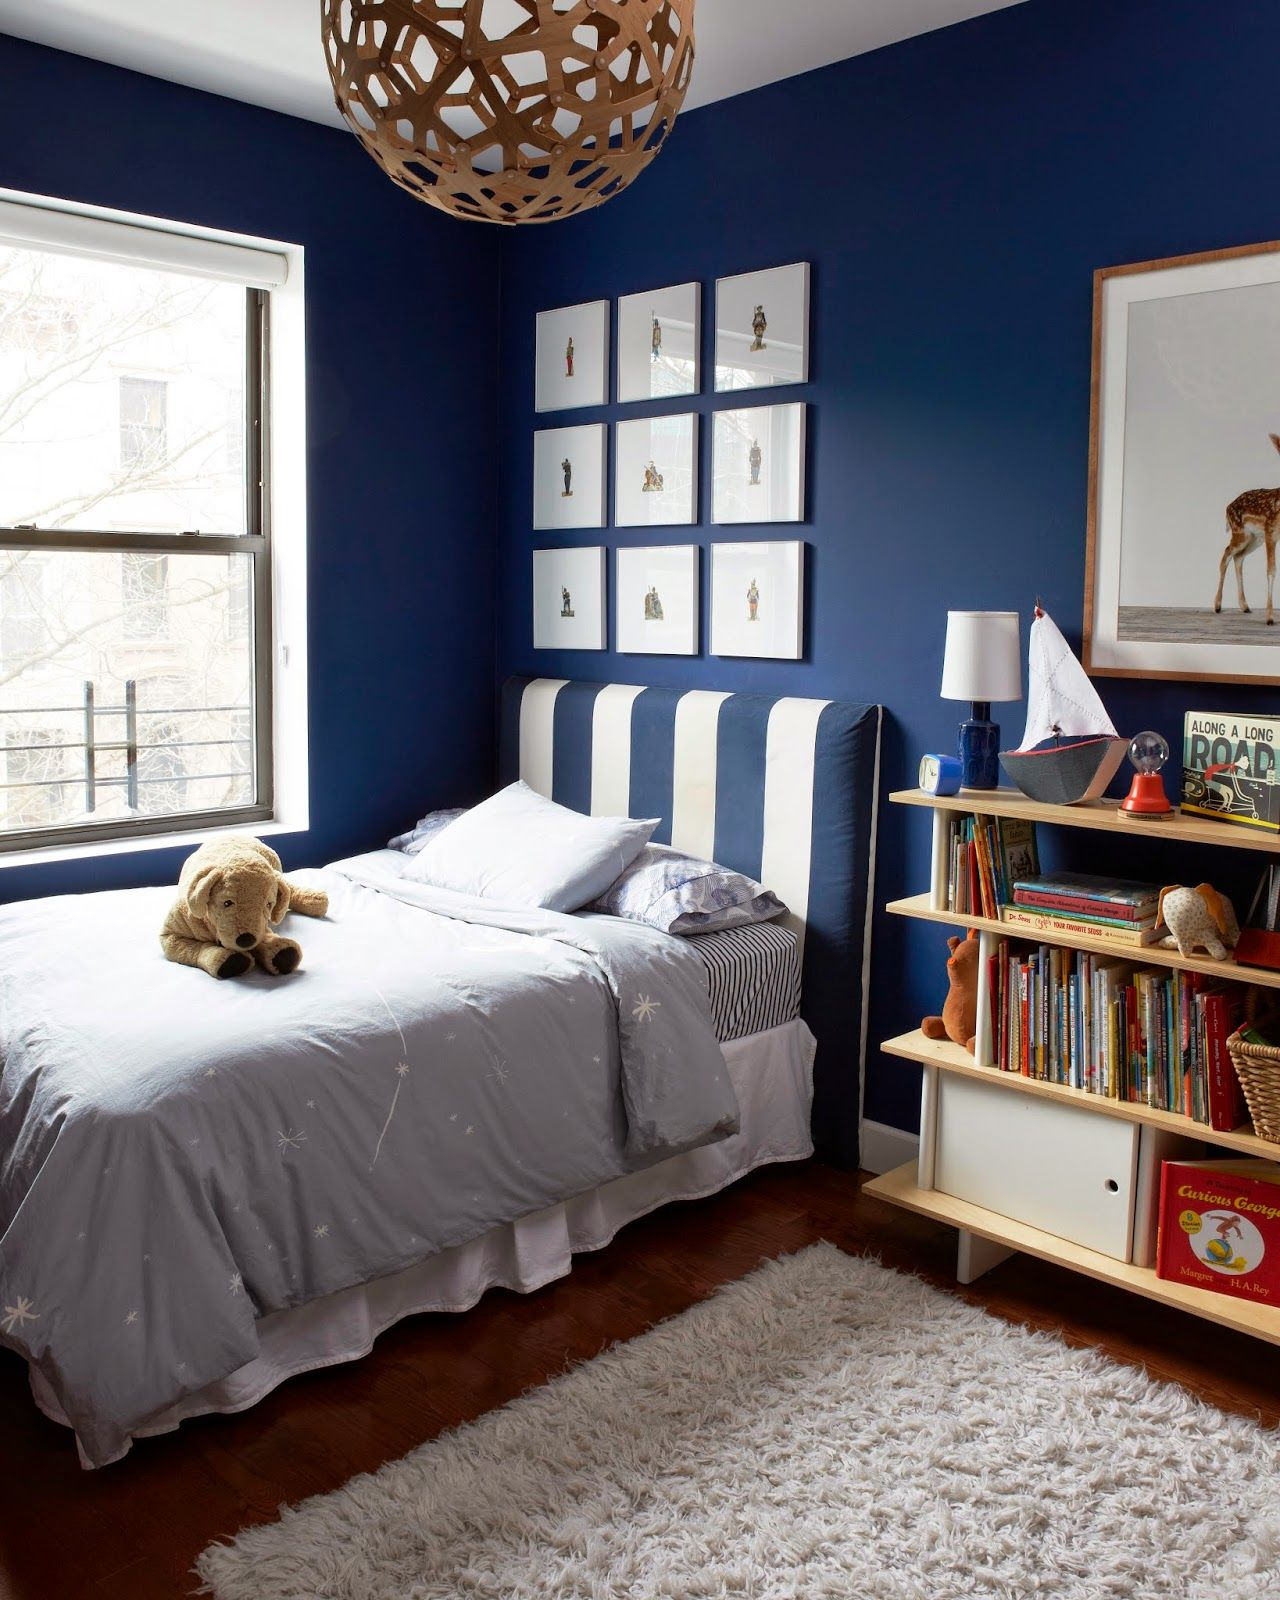 Kids Rooms Climbing Walls And Contemporary Schemes: Help! Which Bedroom Paint Color Would You Choose